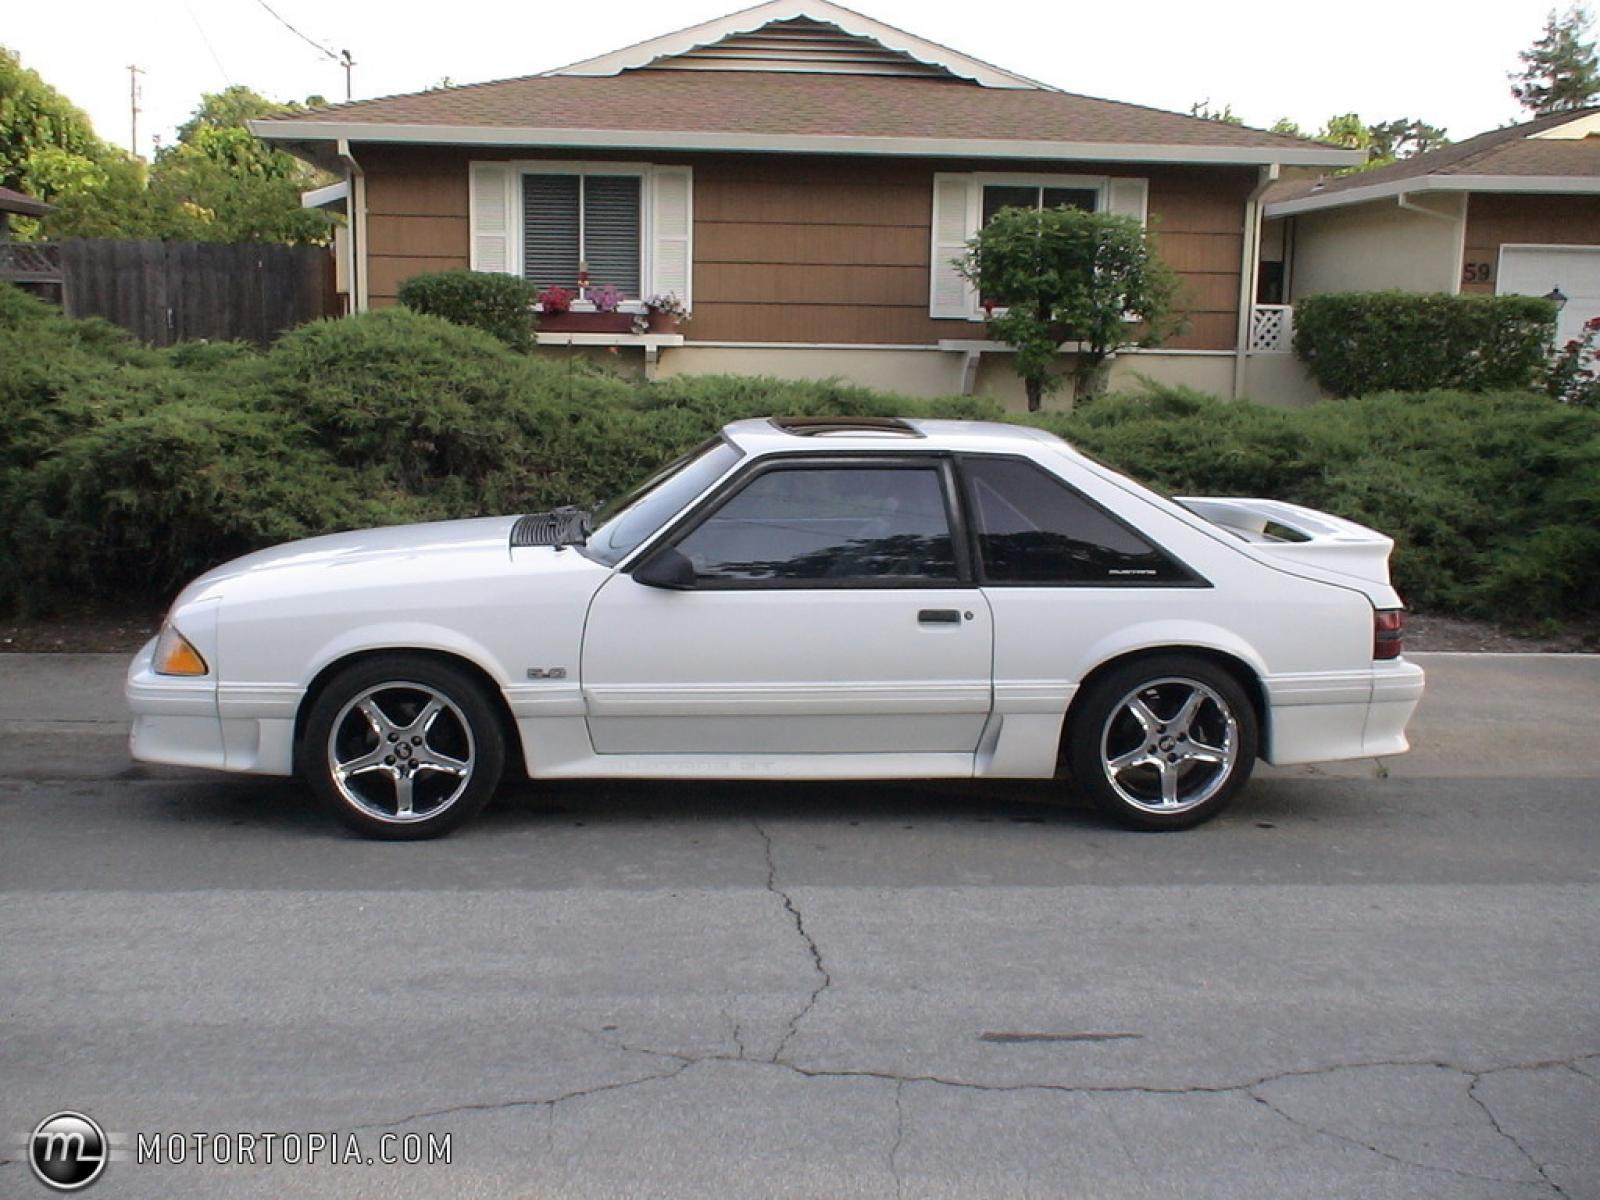 1990 ford mustang information and photos zomb drive